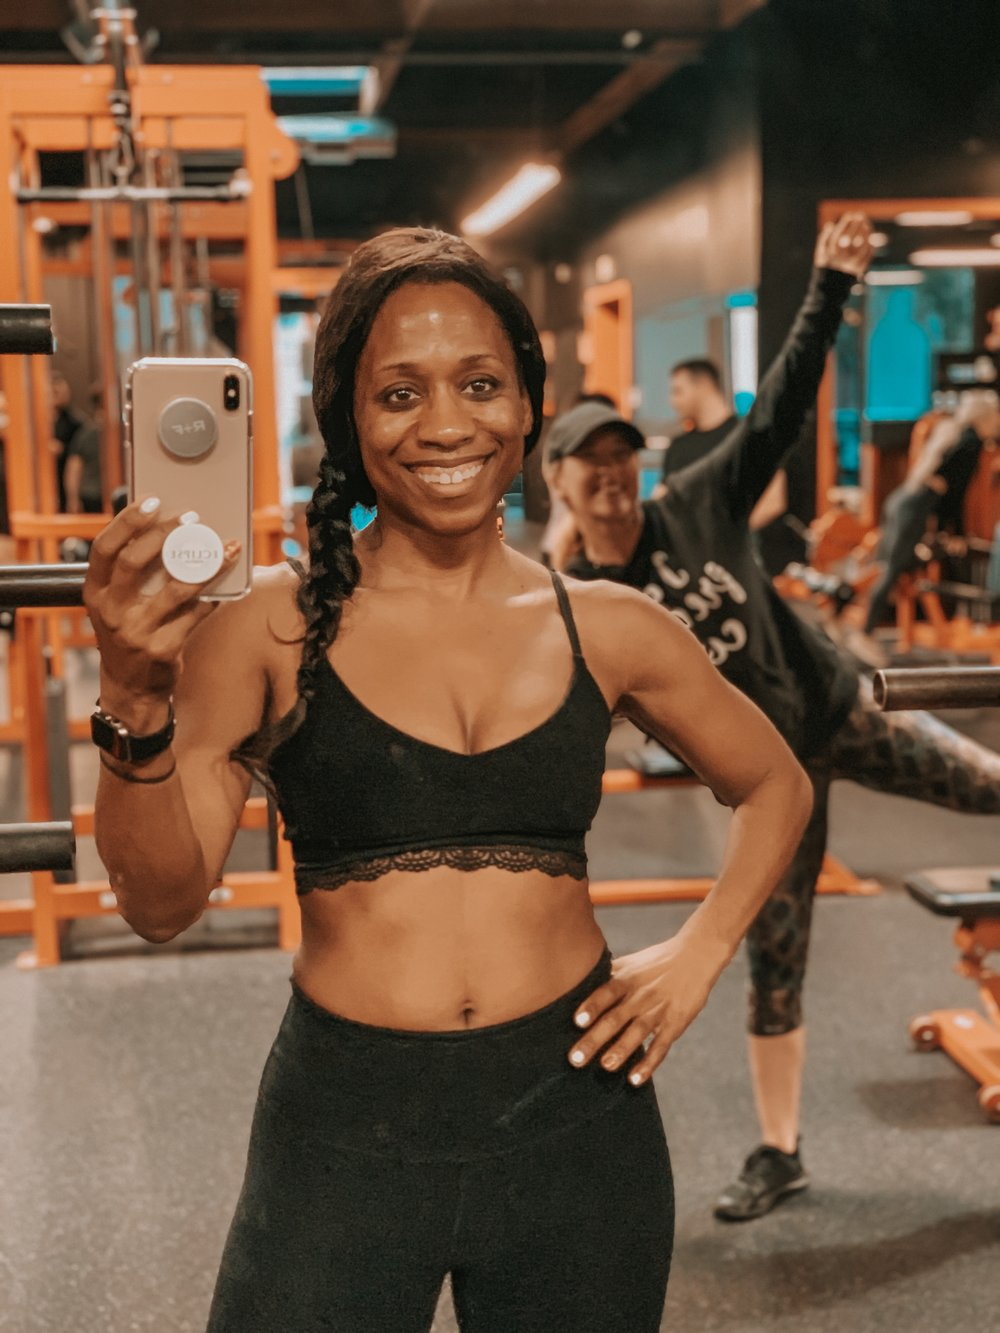 Free Sculpted Challenge Group - Join me in the Sculpted Challenge brought to you by my trainer Shoshanna FOR FREE!Featuring:* Meal Plan* Exercise Plan* Supportive Community and more!Click Here to join.